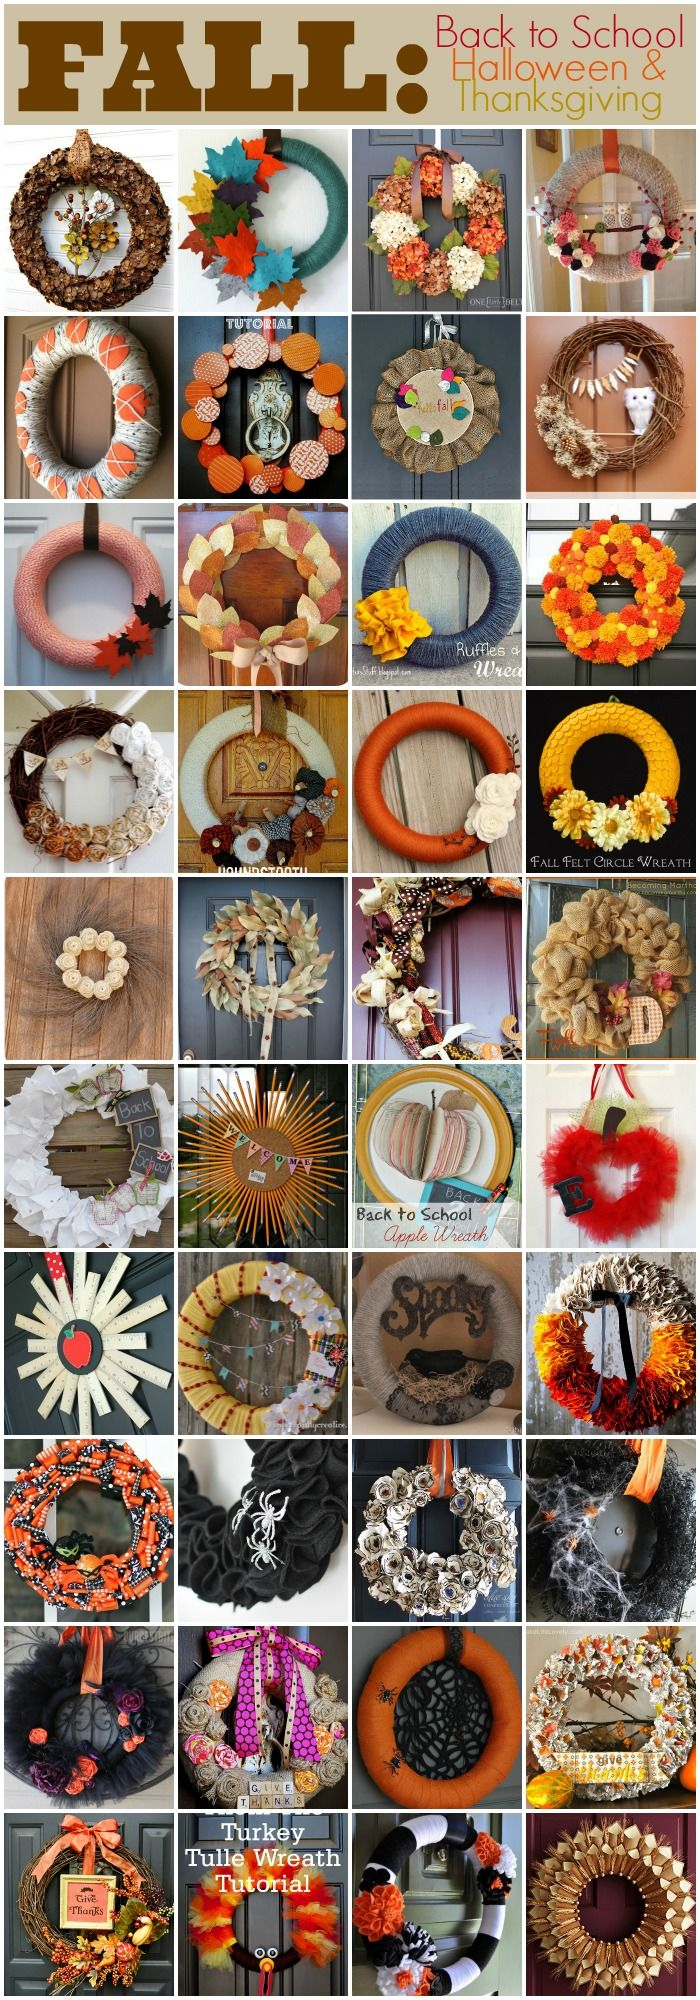 160 Best Wreath Tutorials for every season and holiday - Becoming Martha